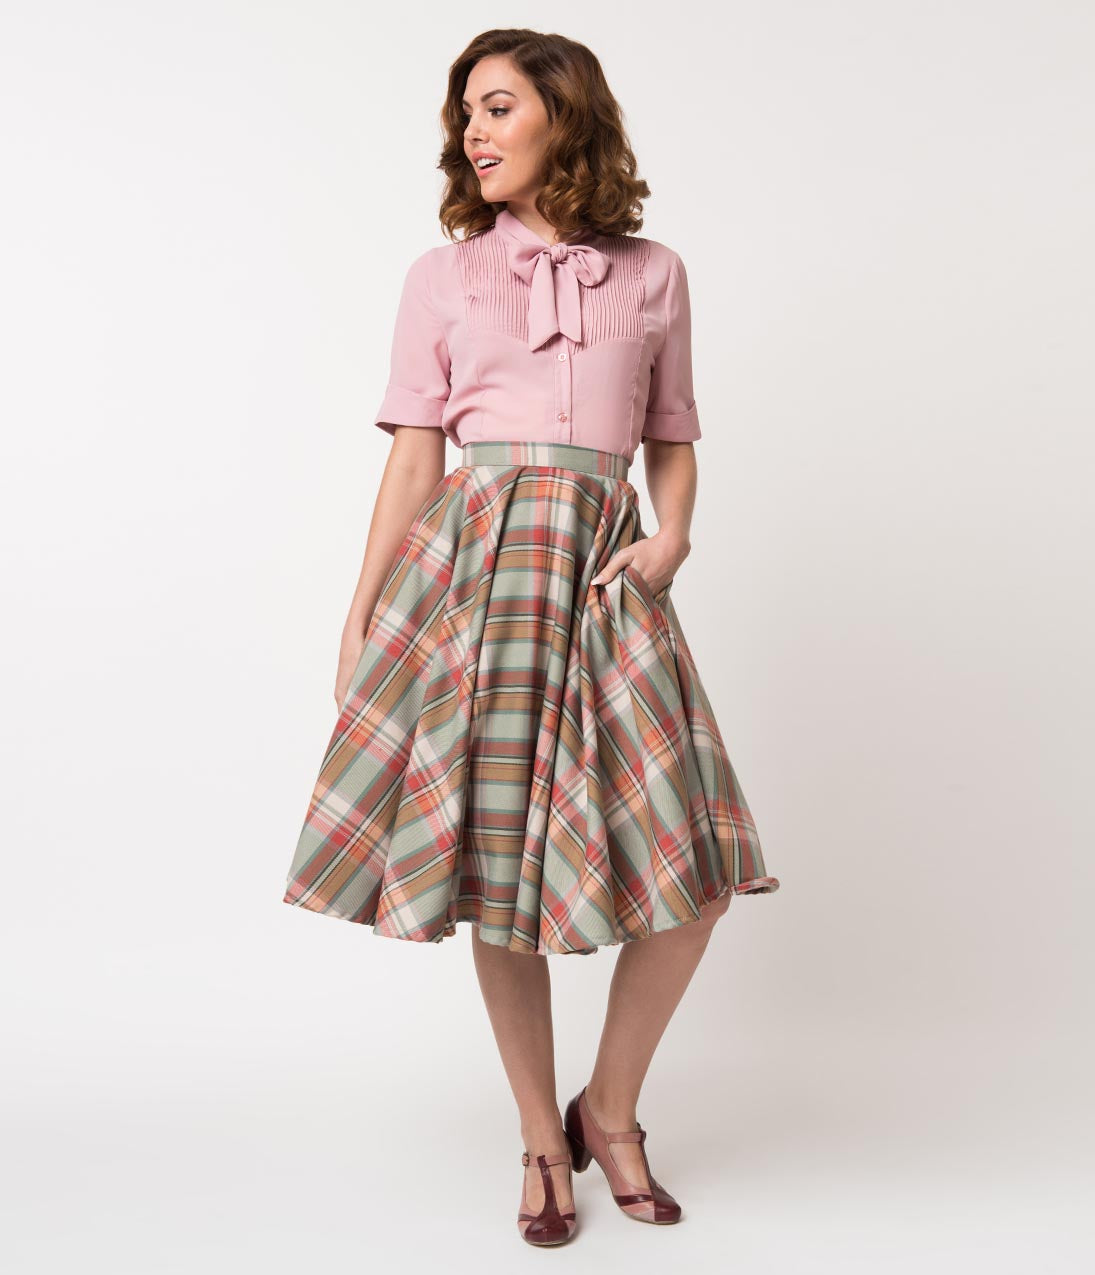 1950s Swing Skirt, Poodle Skirt, Pencil Skirts Vintage Style Mint  Cream Plaid Cotton Circle Swing Skirt $62.00 AT vintagedancer.com